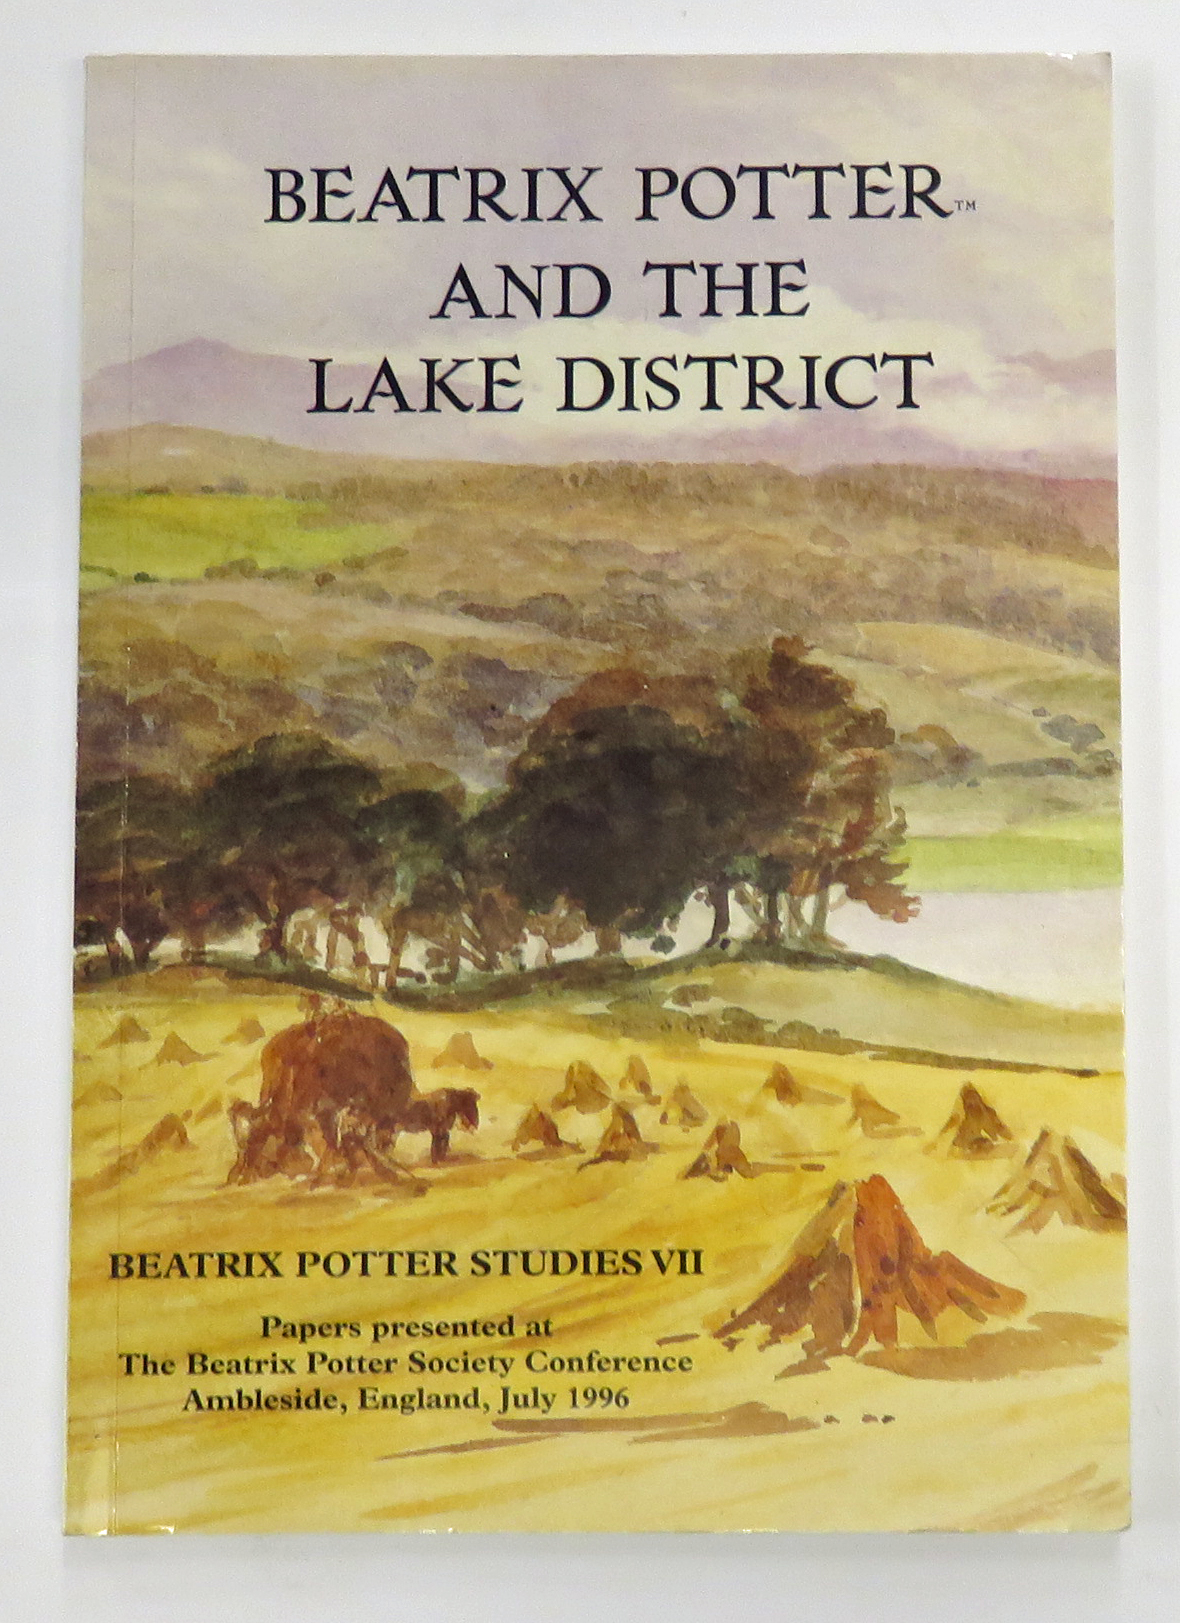 Beatrix Potter And The Lake District. Beatrix Potter Studies VII - Edited By Enid Bassom, Rowena Knox And Irene Whalley